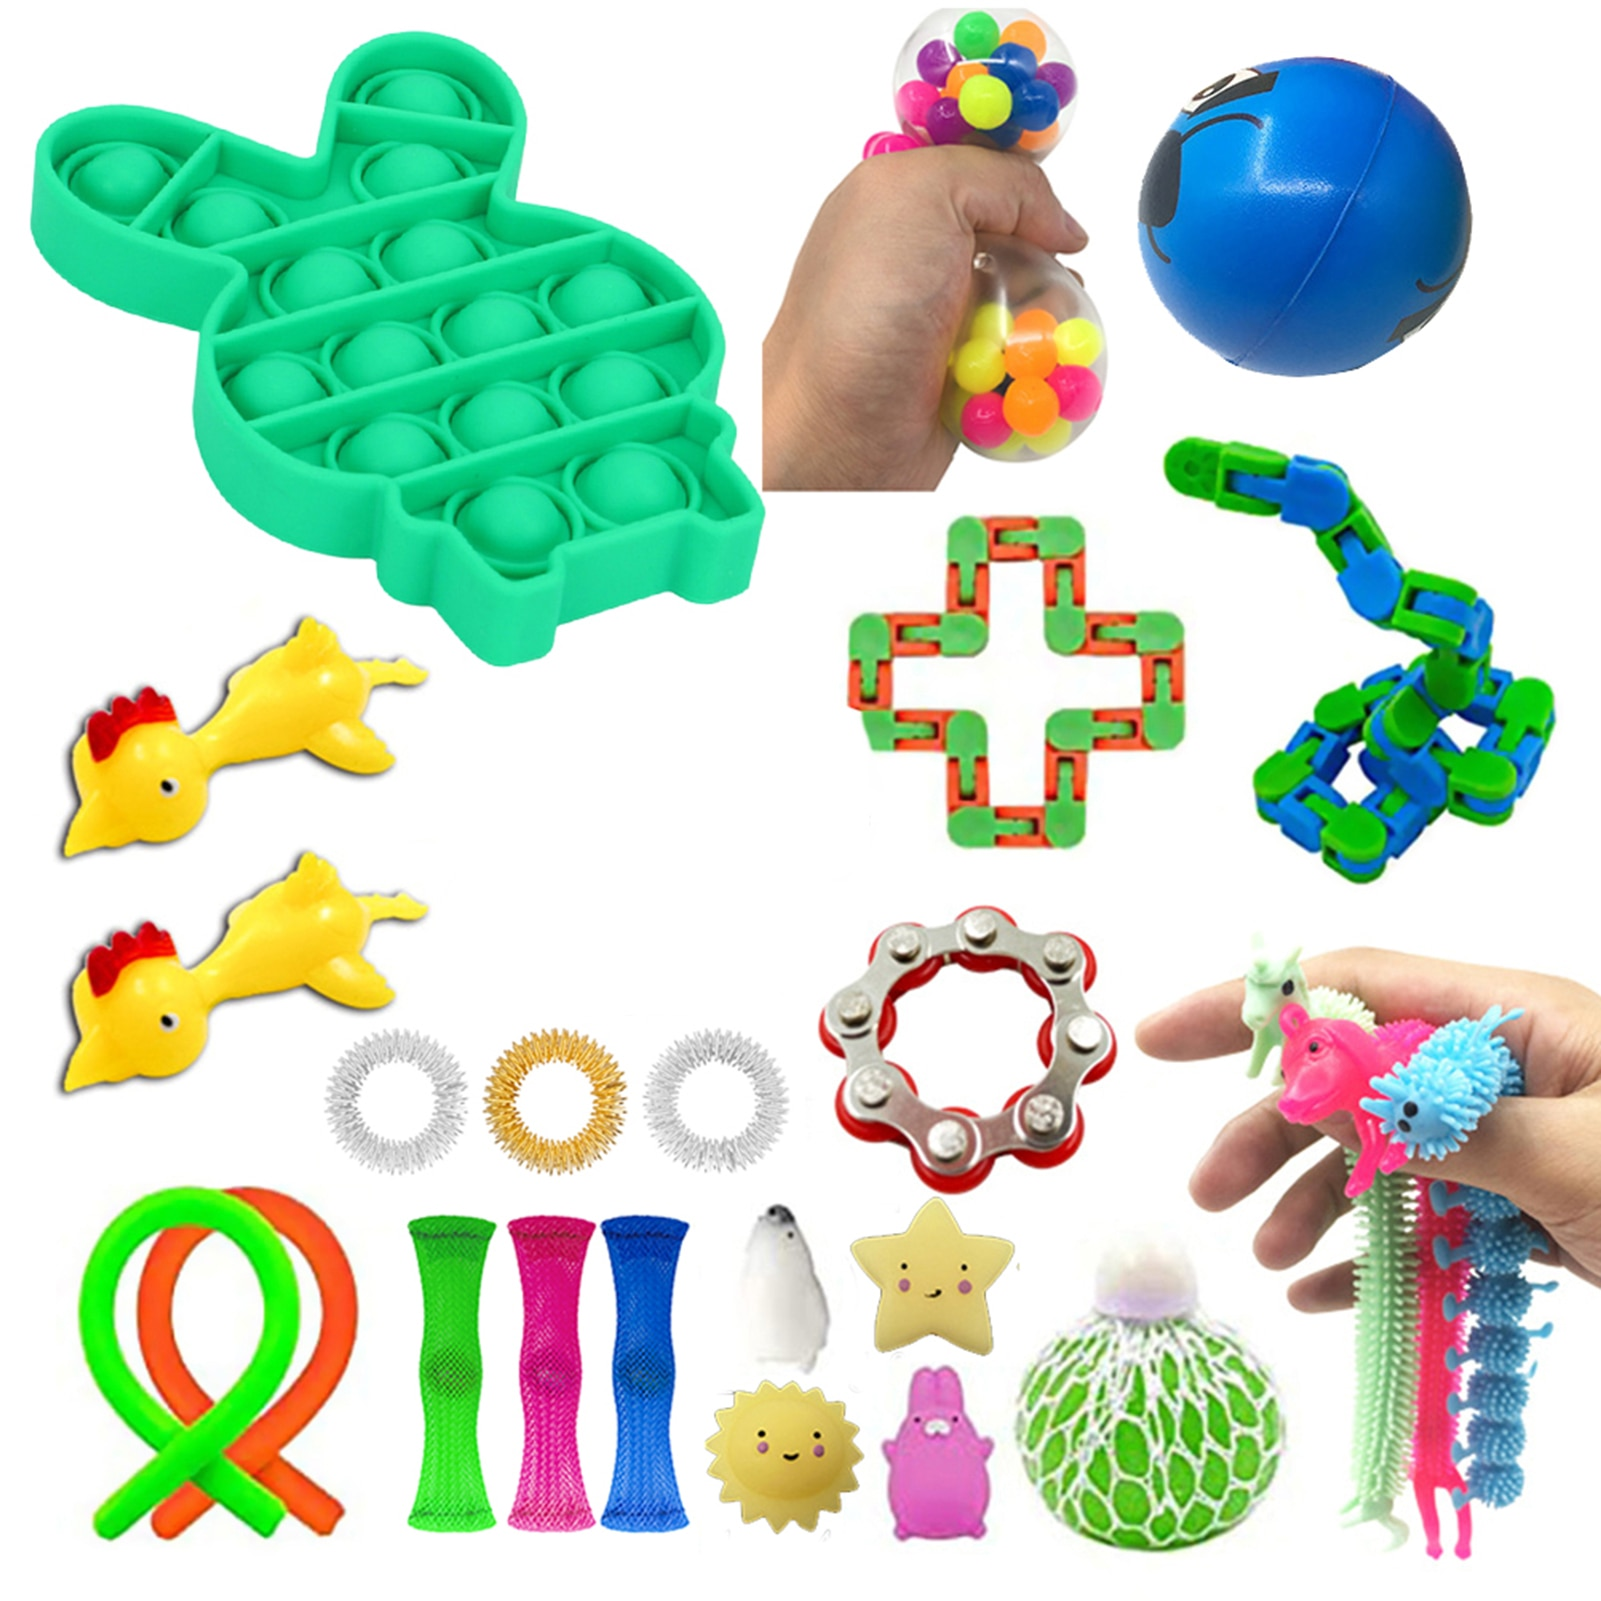 24 IN 1 Fidget Antistress Toys Decompression Antistress Premium Durable Simple Dimple Hand Stress Relief Toy For Children Kids enlarge